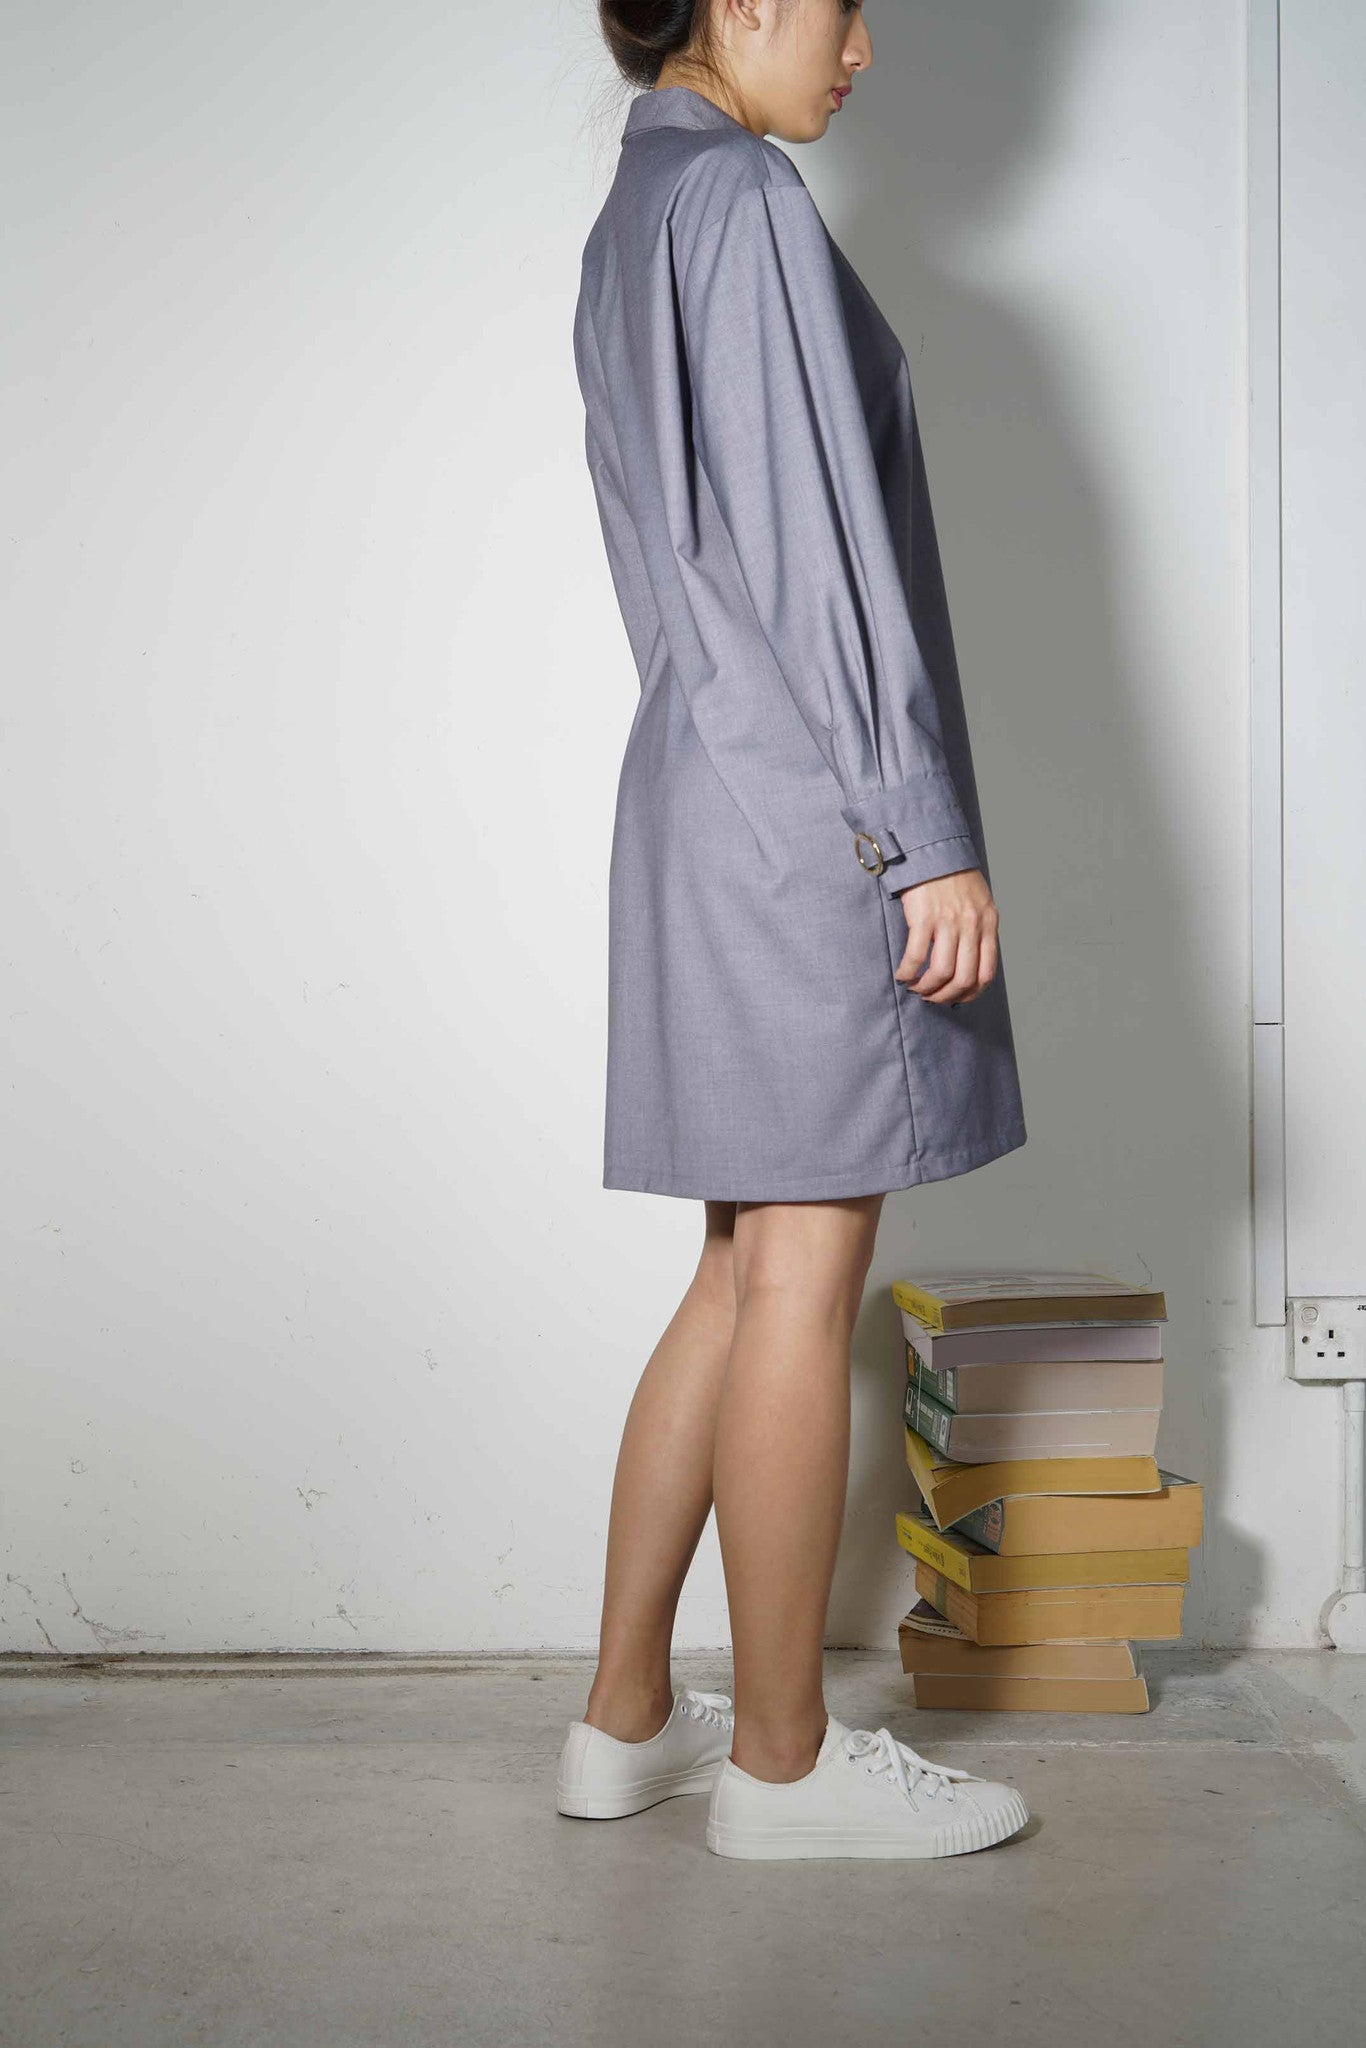 Plus-Minus Shirtdress #74 - Carmel